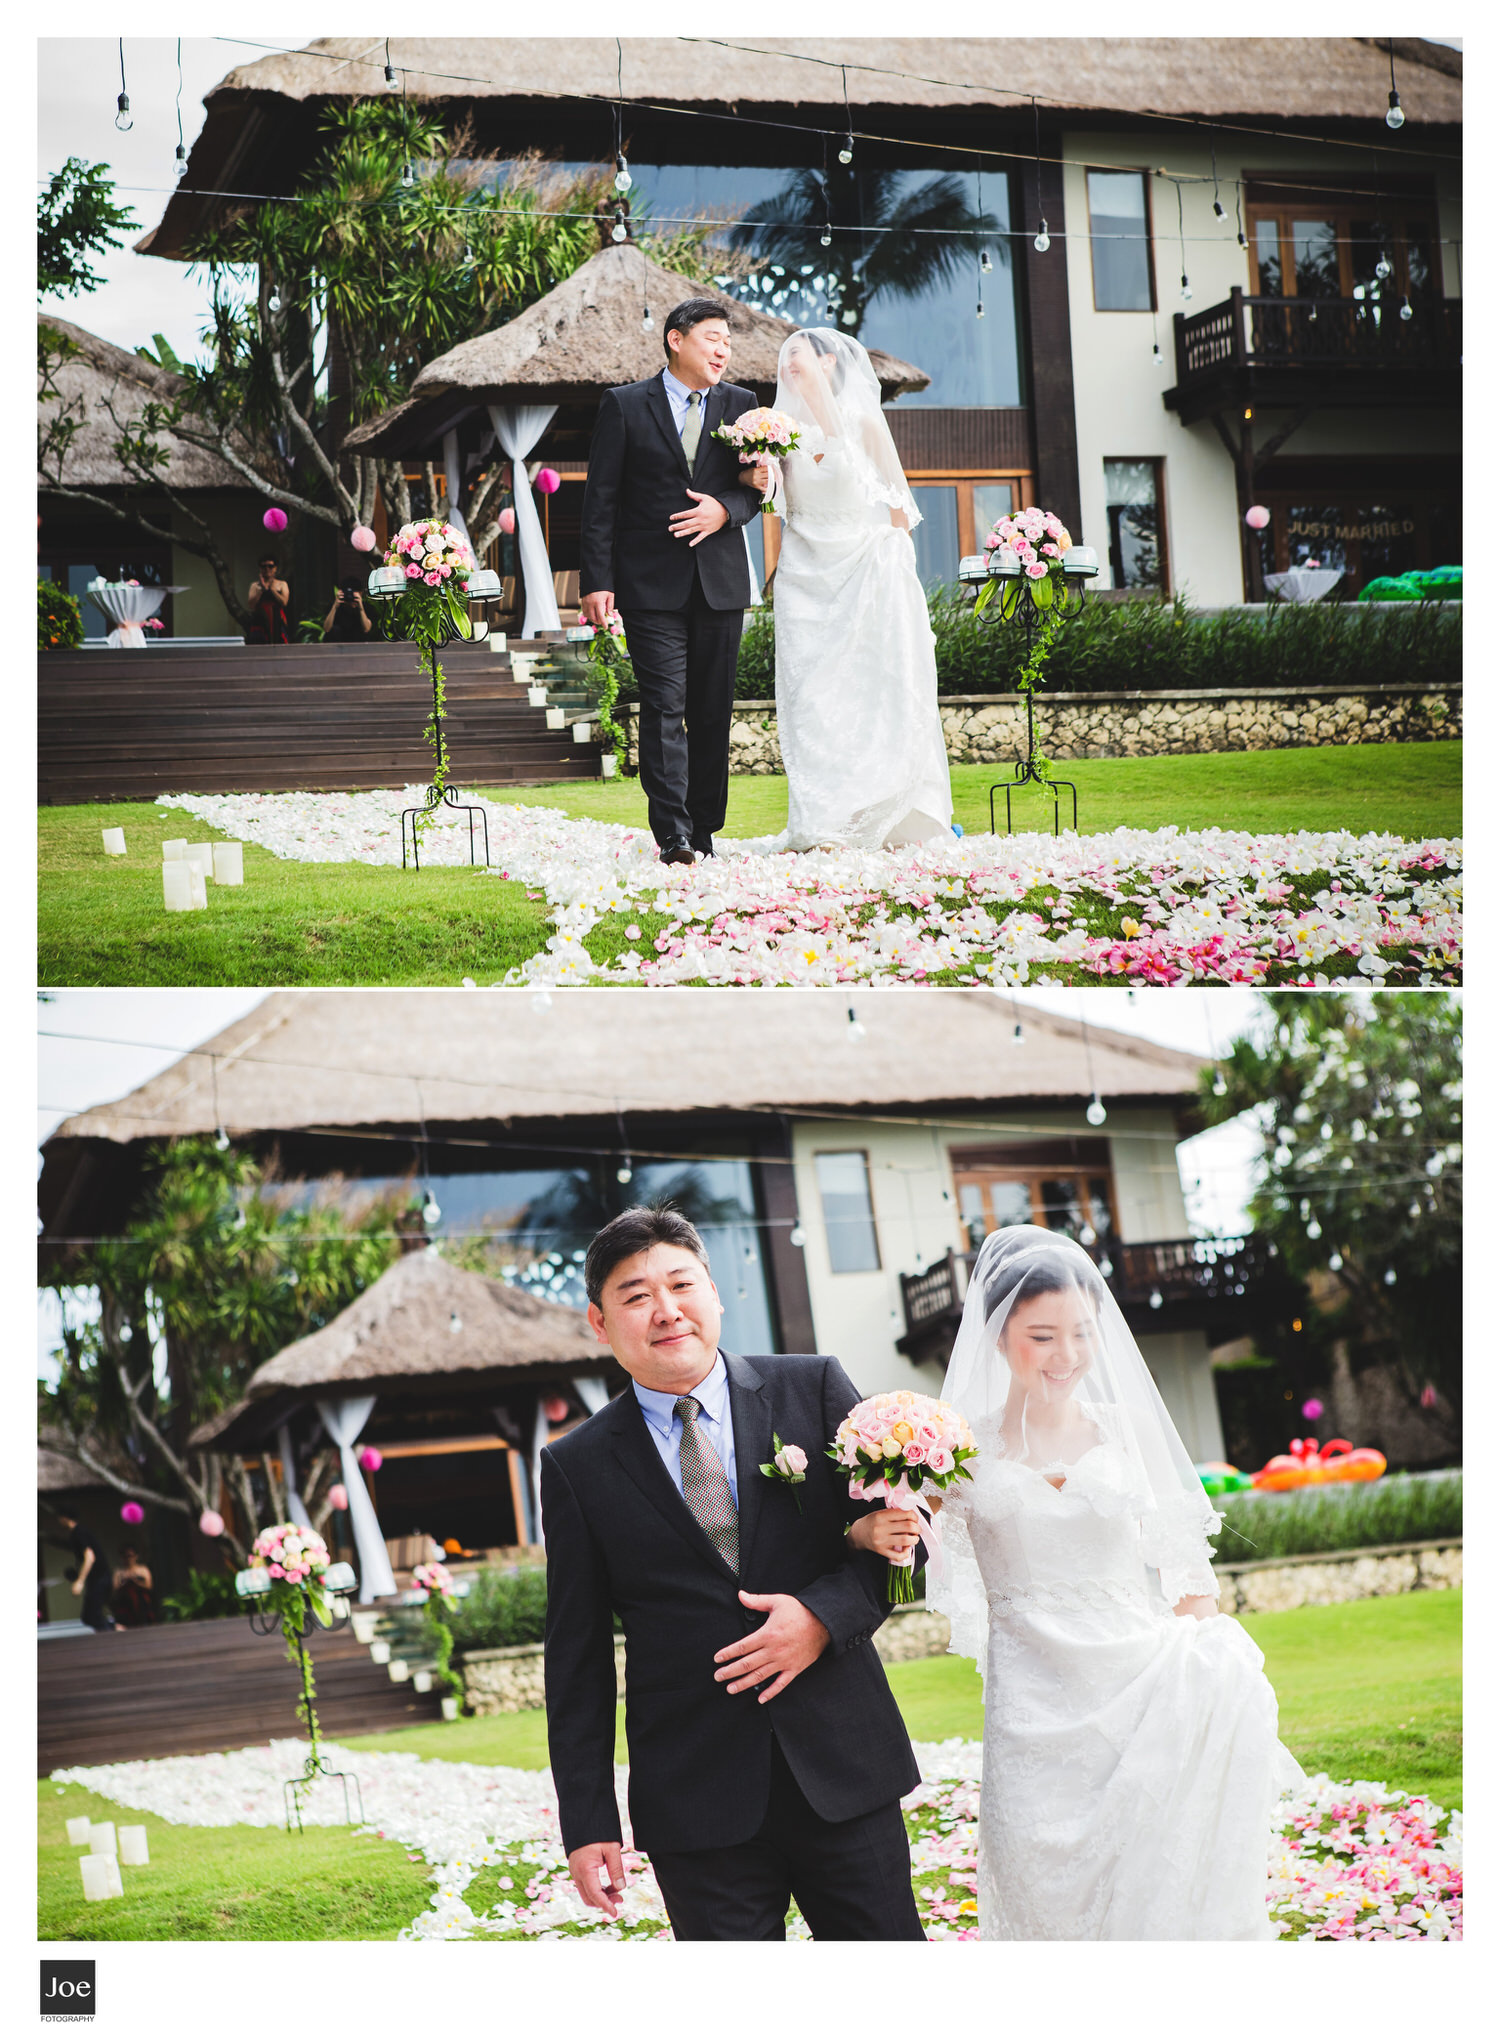 joe-fotography-bali-wedding-ayana-resort-janie-sean-46.jpg